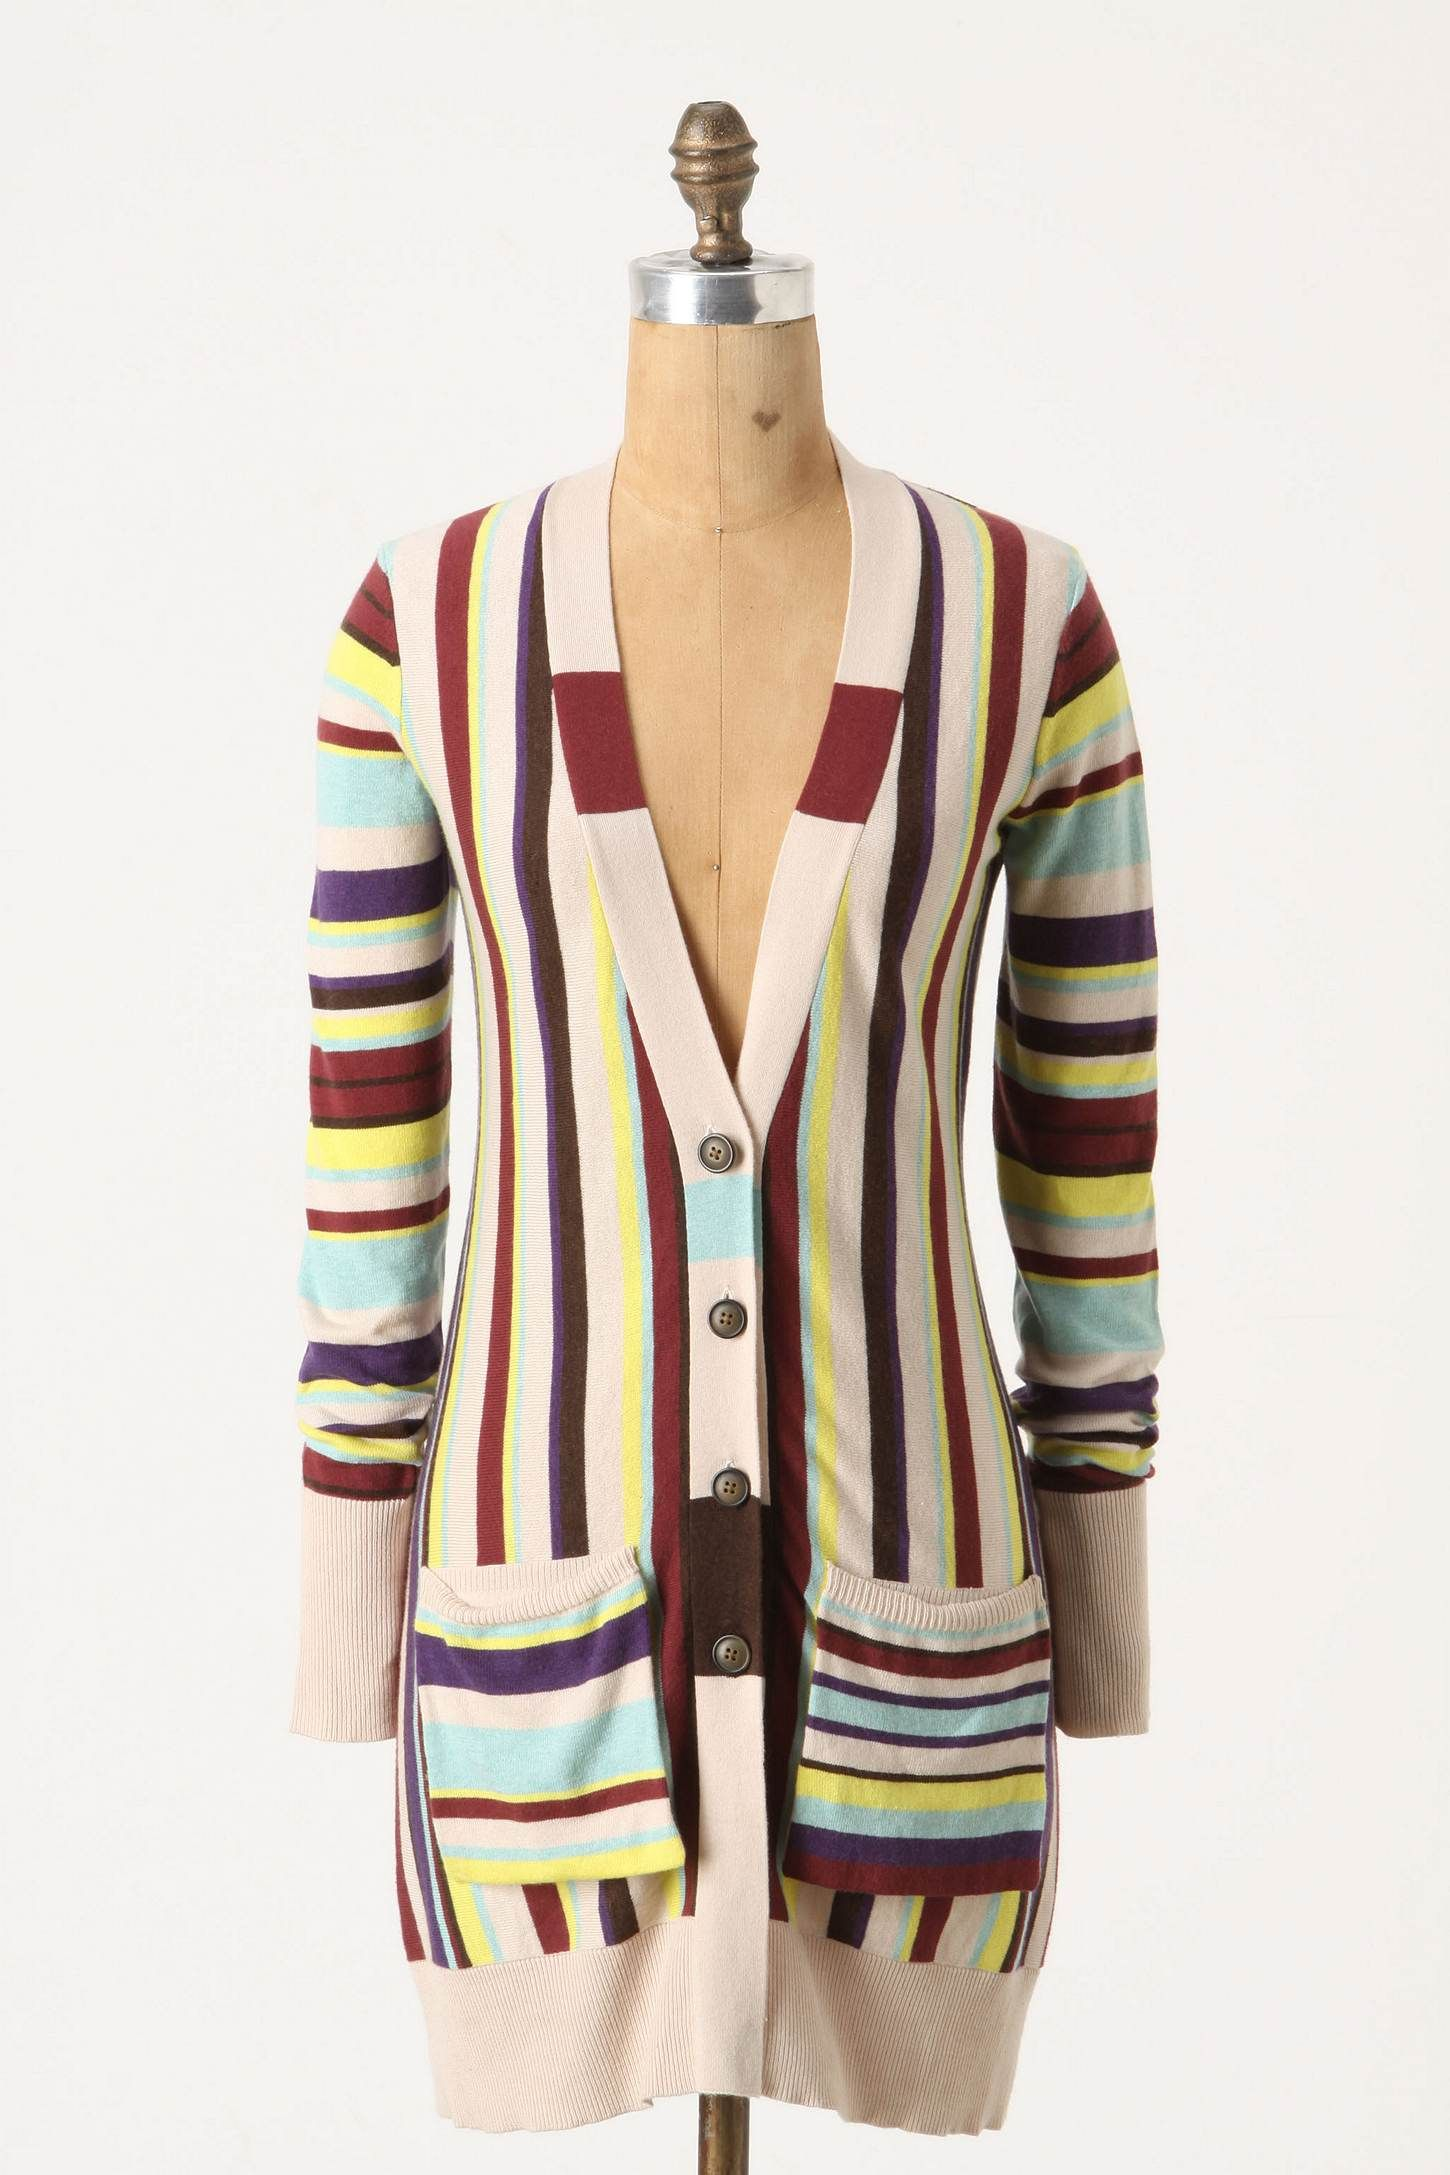 So many colors, so streamlined Anthropologie clothing